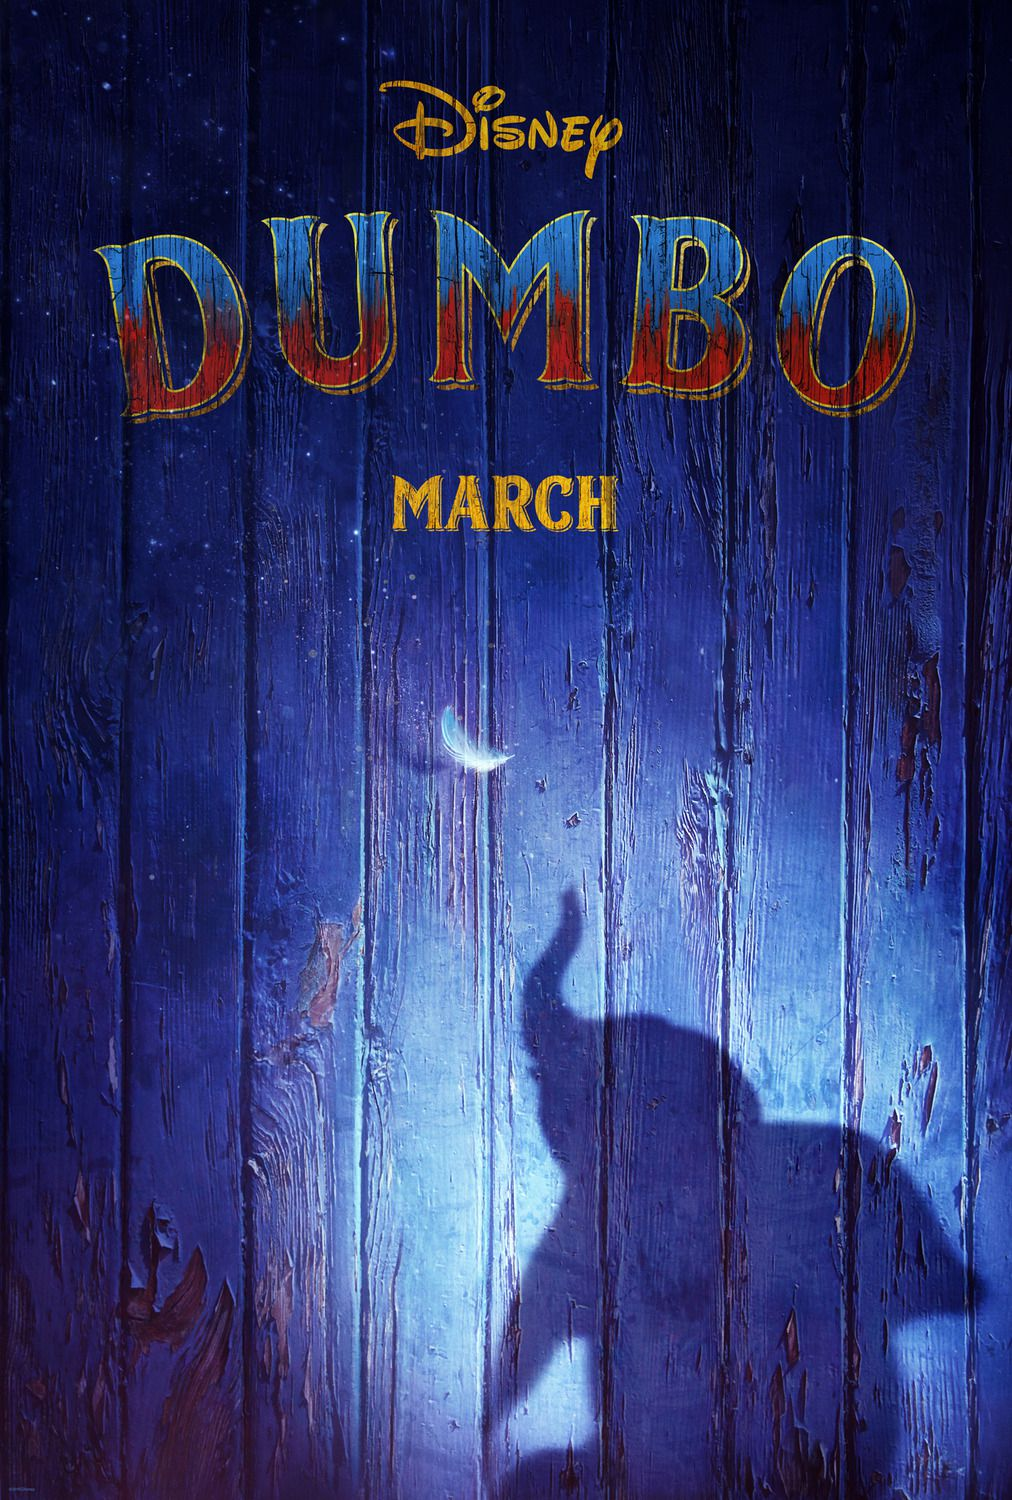 Dumbo - live action 2019 by Tim Burton